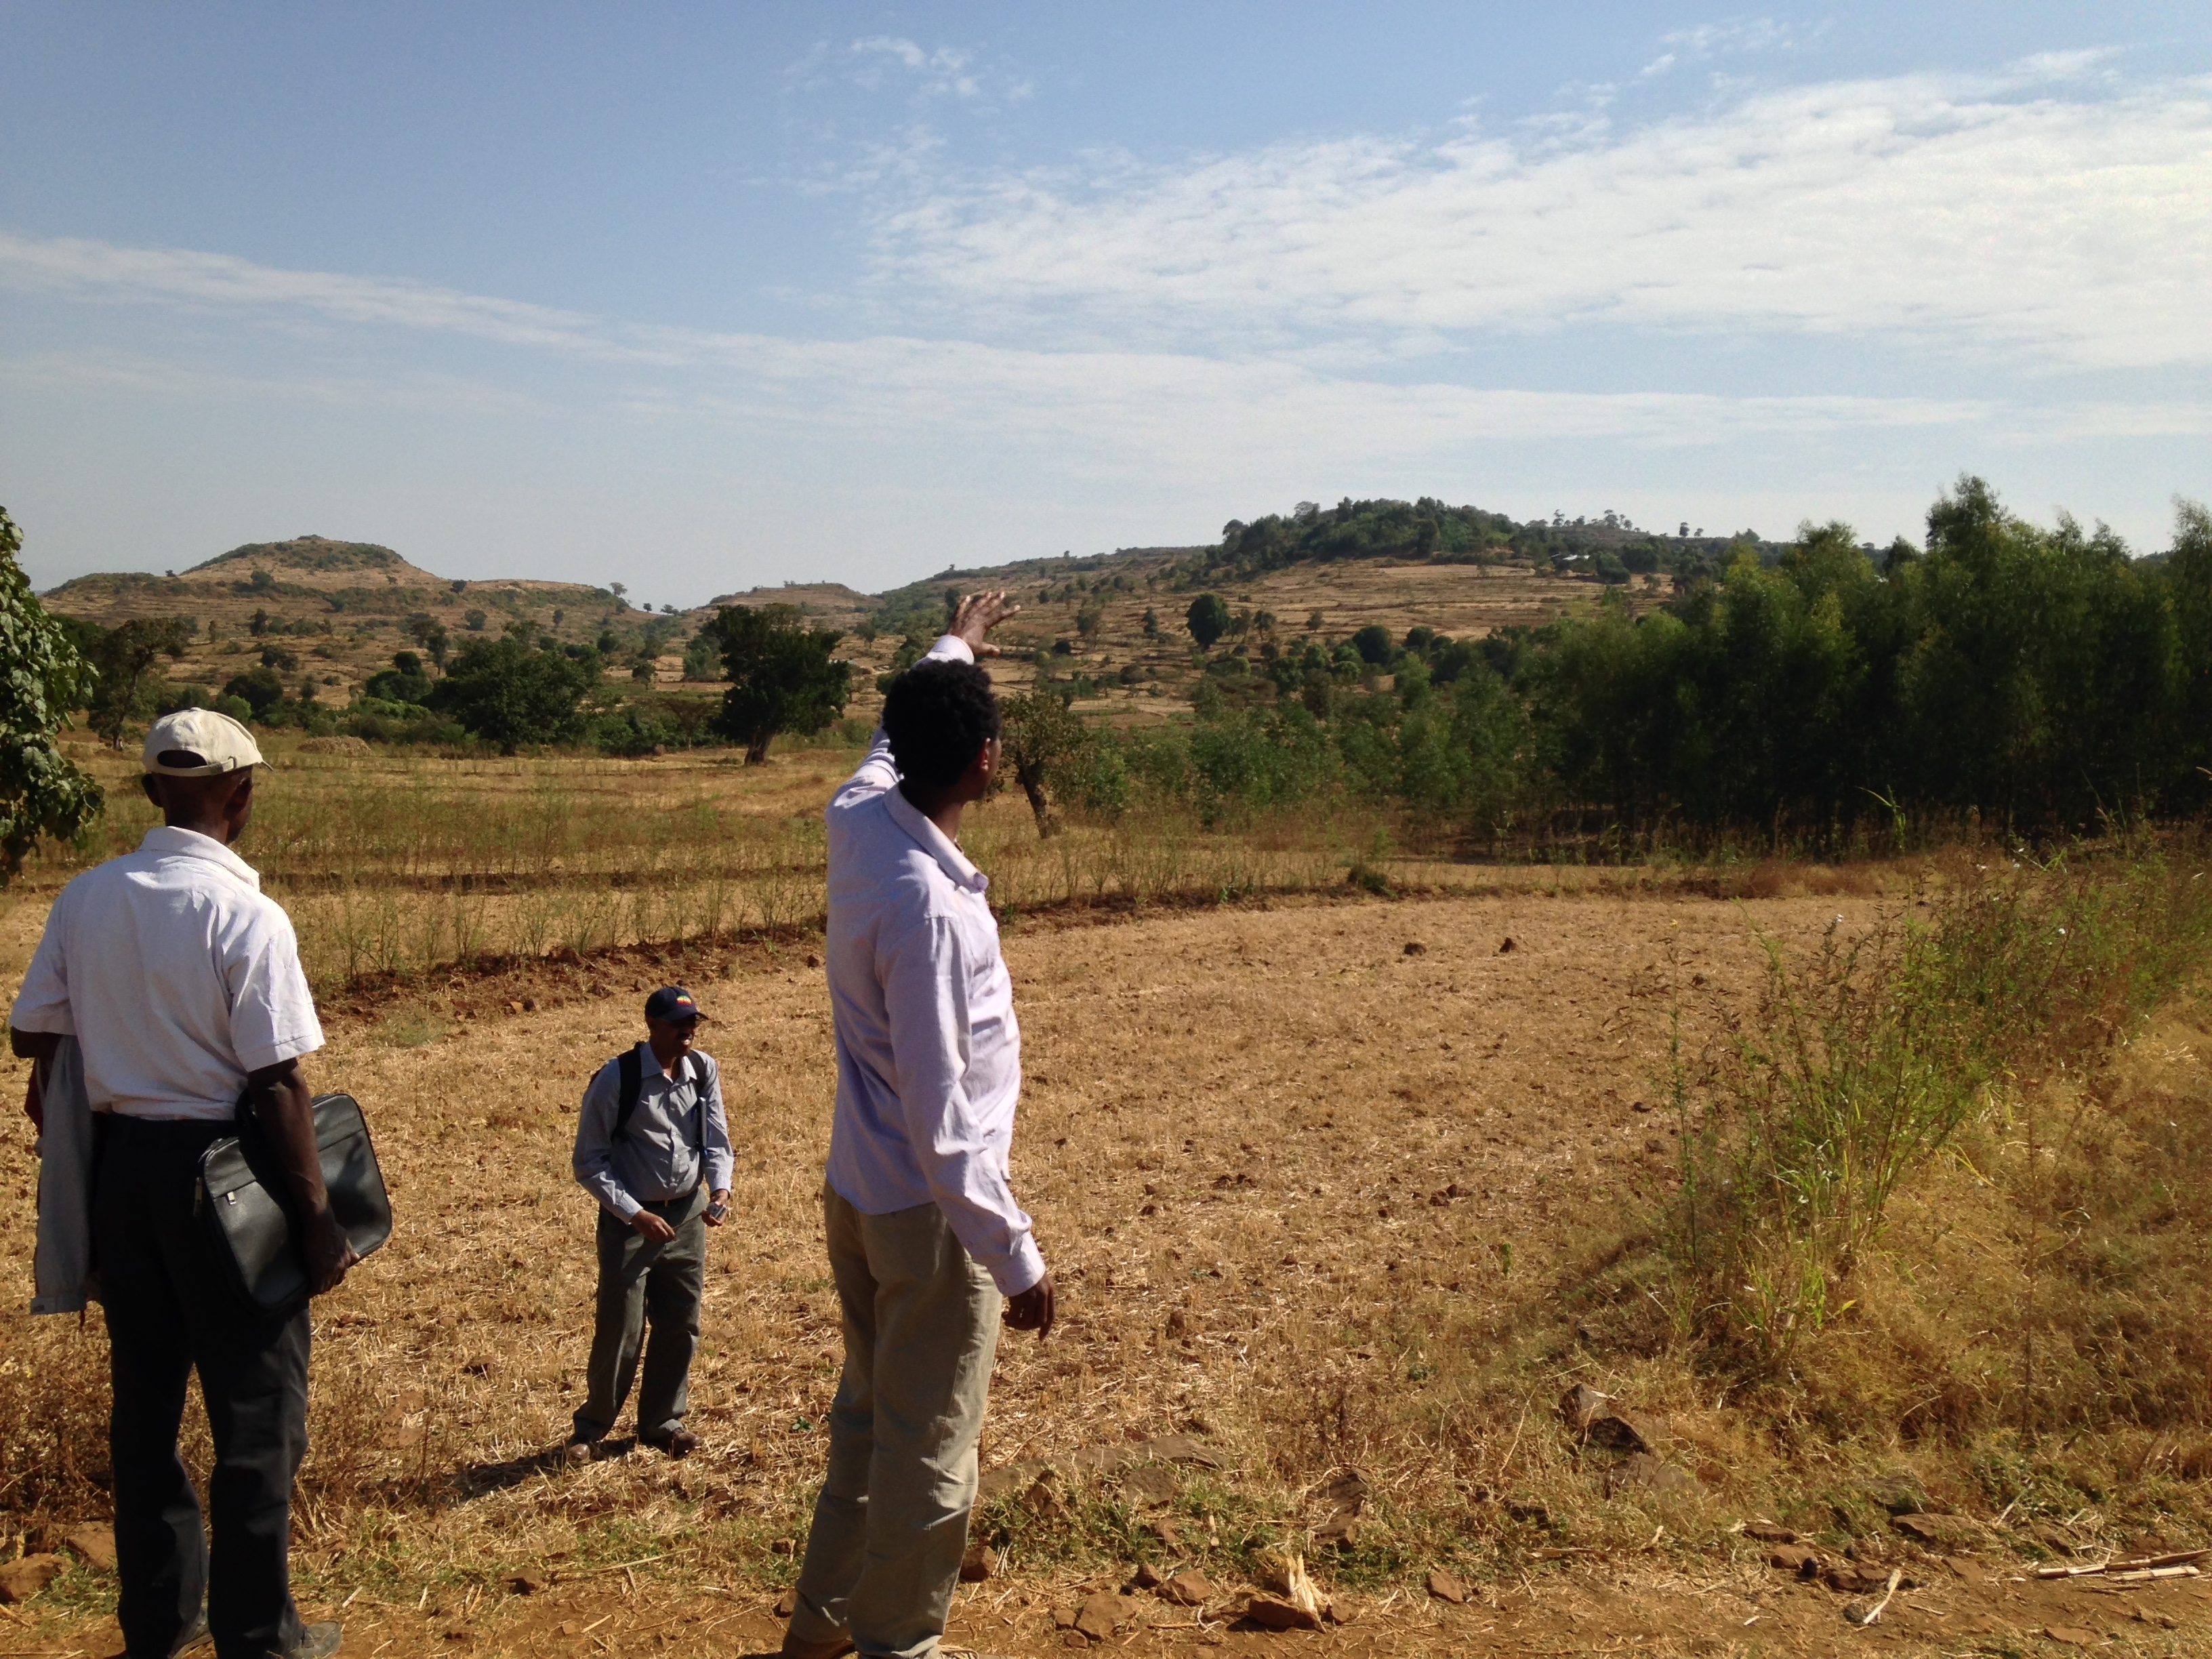 A watershed coordinator describes how the catchment systems improve land and water management.